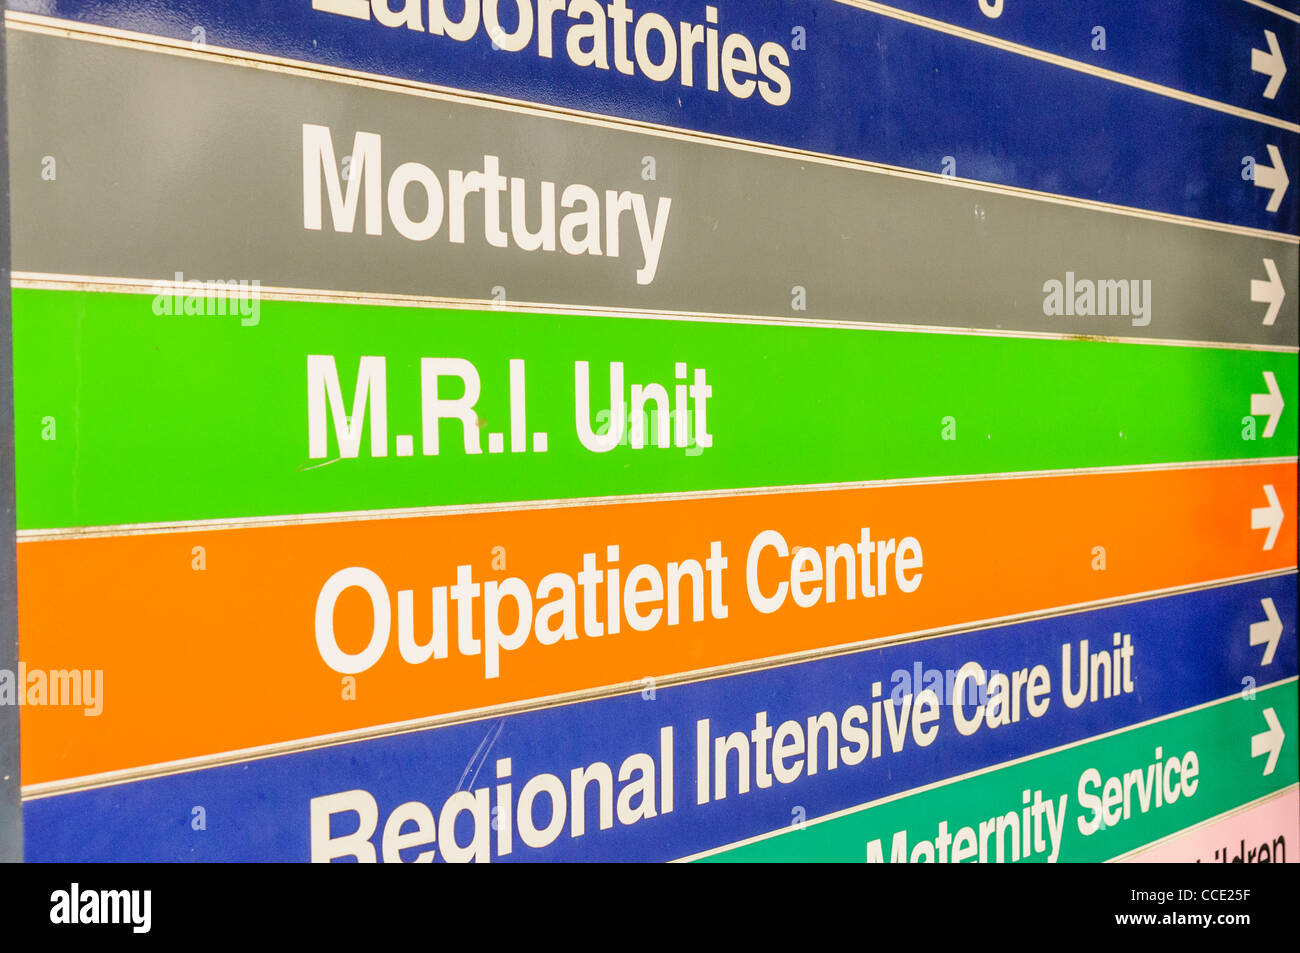 Signs at a hospital for Mortuary, MRI Unit, Outpatient Centre and Regional Intensive Care Unit - Stock Image